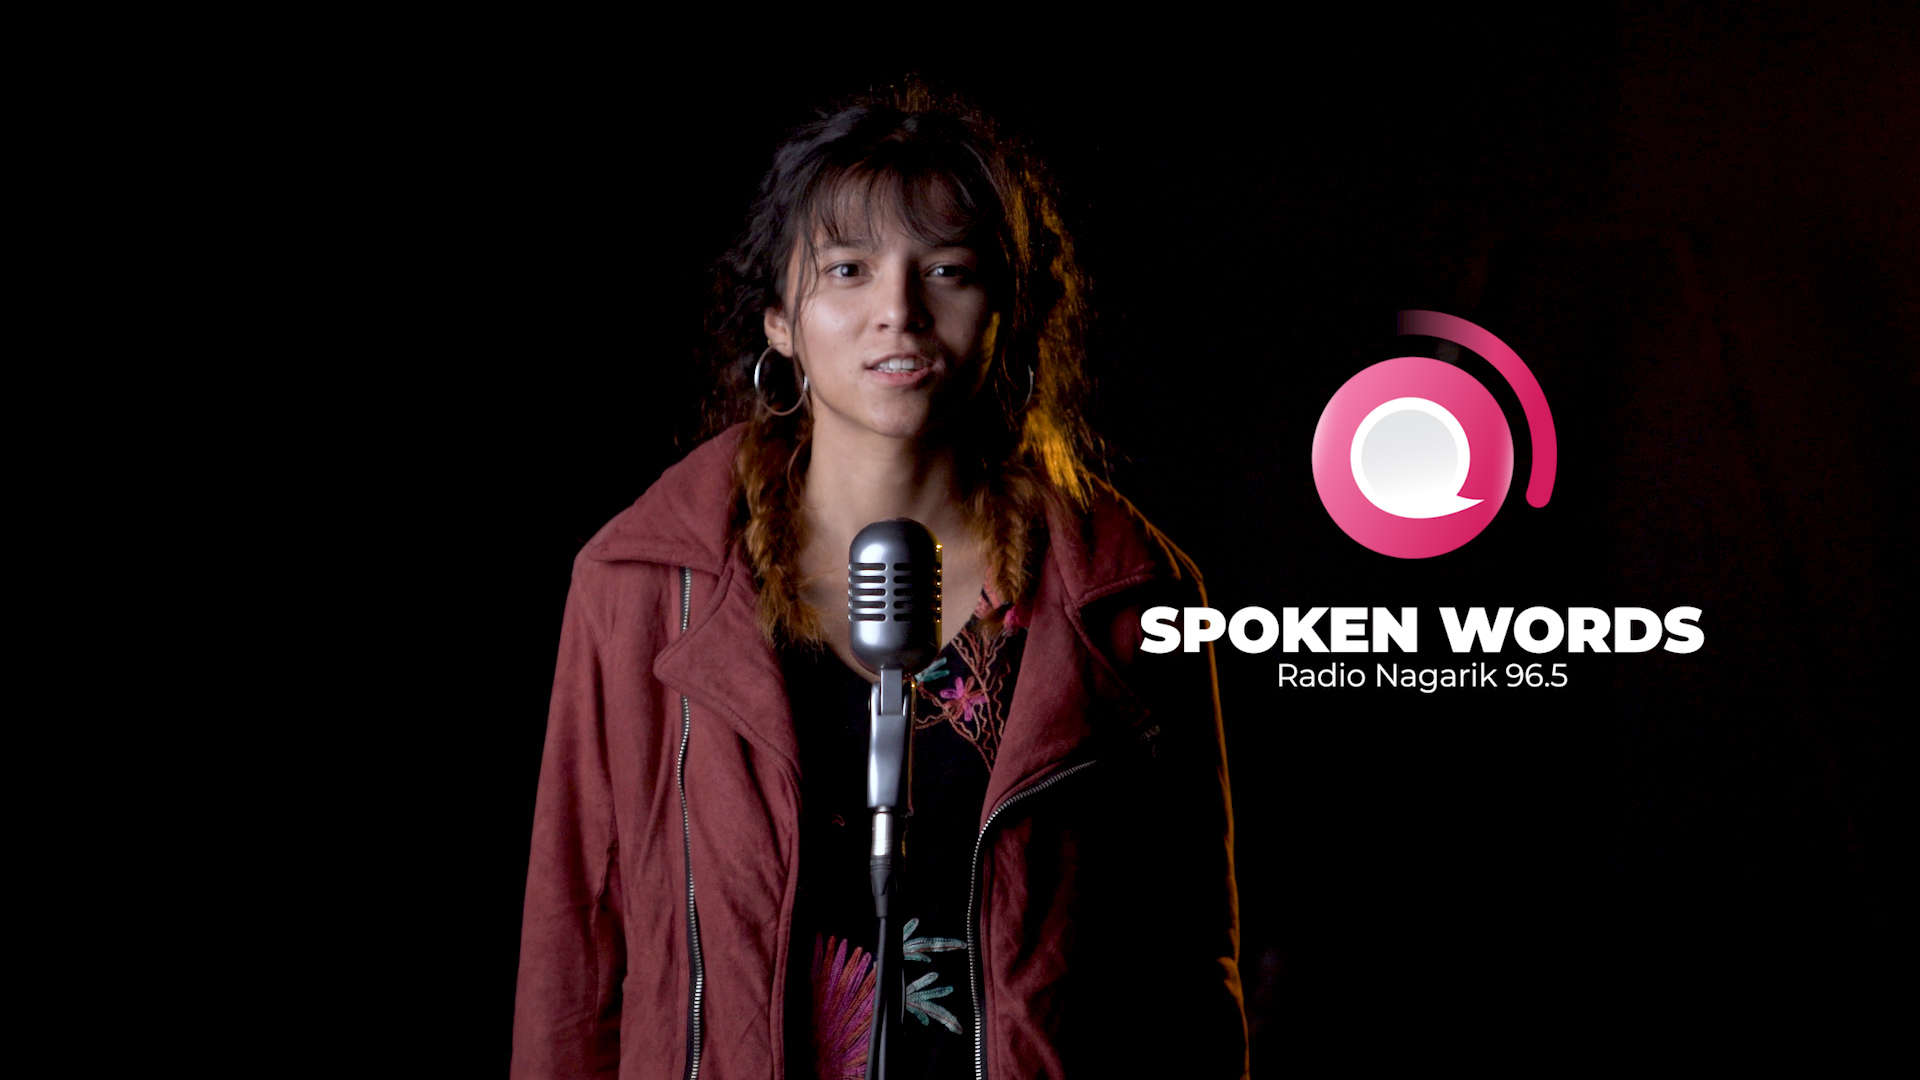 'In the Name of God' | Spoken Words performed by Namuna Giri